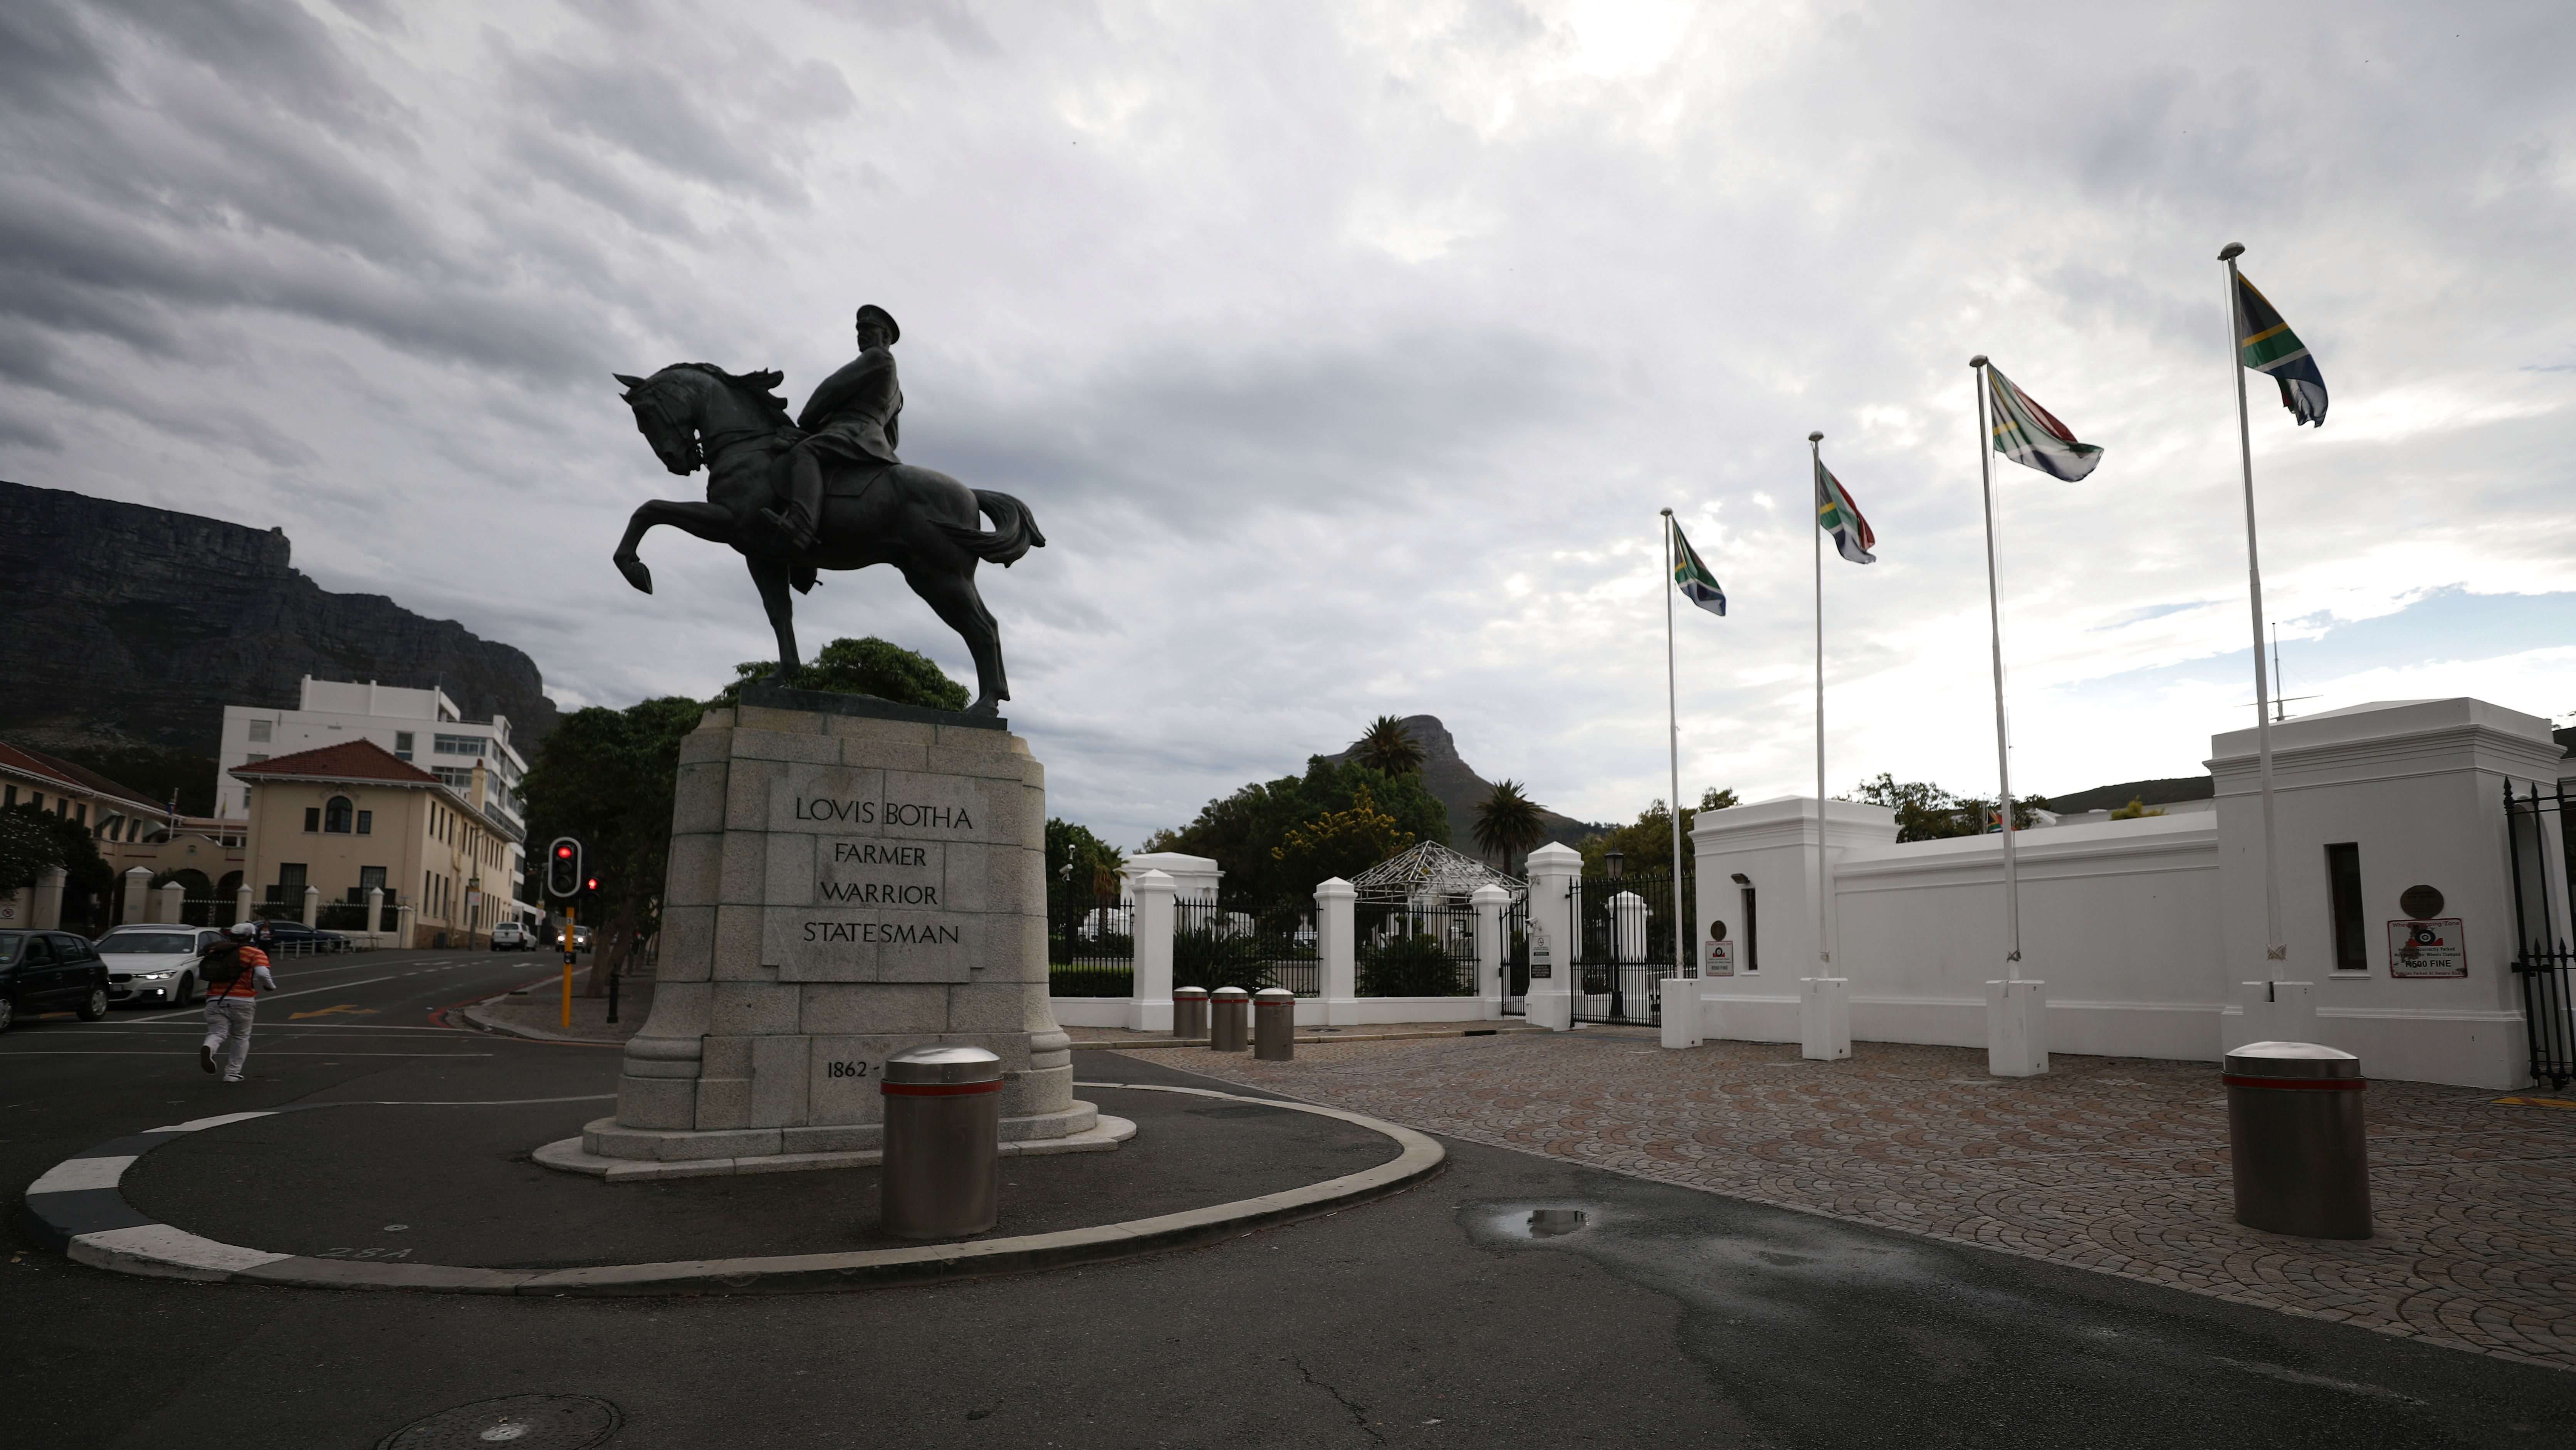 Flags fly behind the statue of Louis Botha, South Africa's first Prime Minister, outside Parliament in Cape Town, South Africa, February 13, 2018.